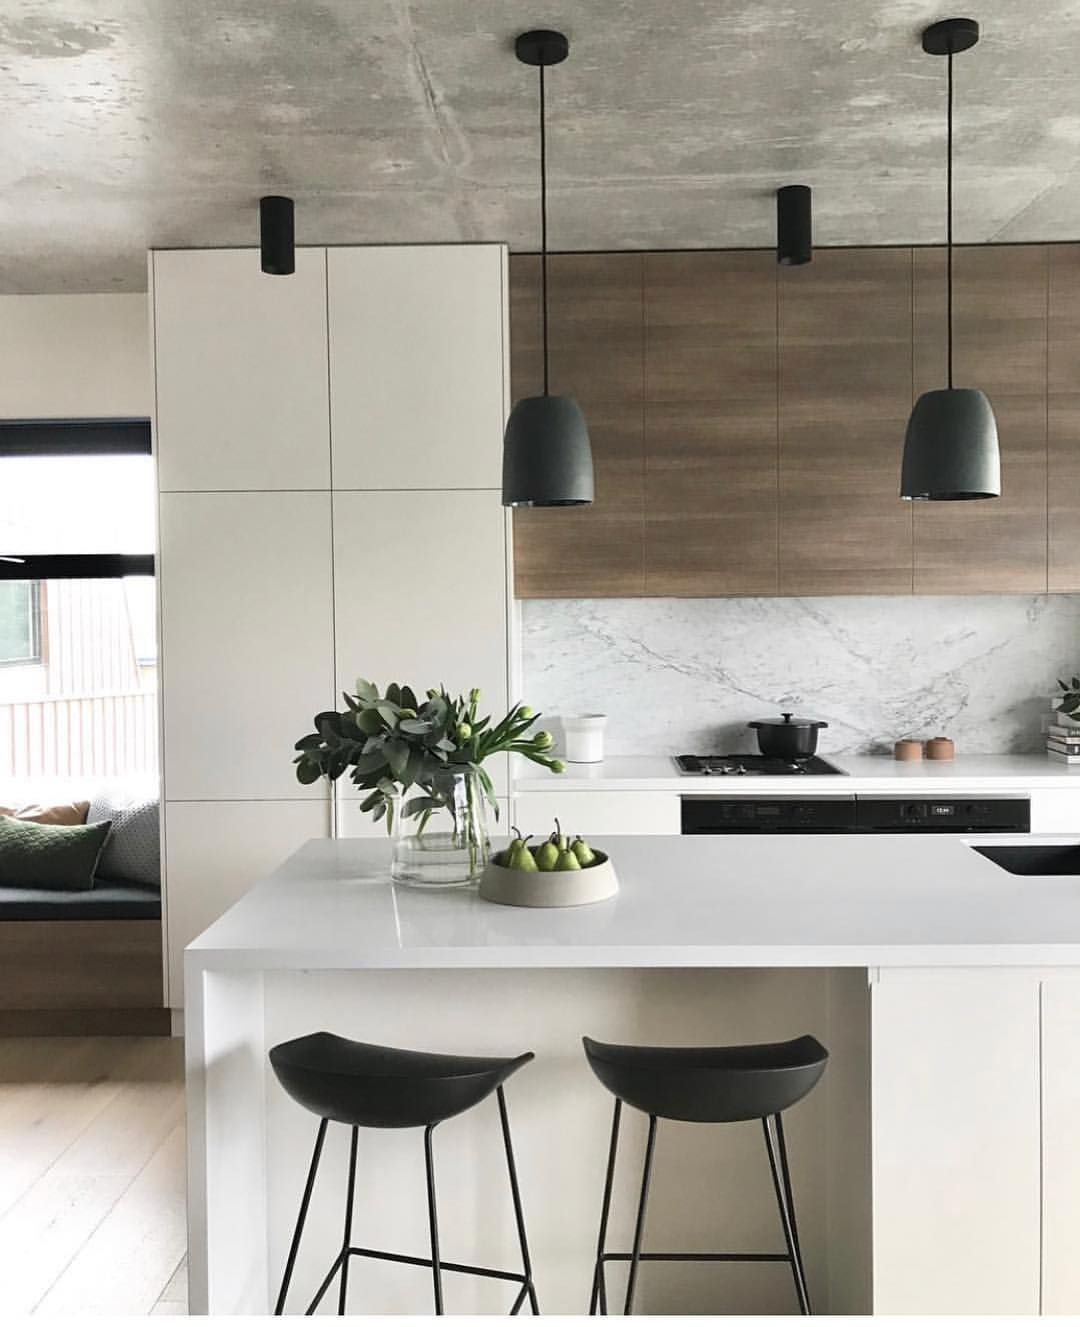 This Kitchen Is Everything Interior Design Styling And Photography By The Contemporary Kitchen Decor Minimalist Kitchen Design Contemporary Kitchen Design